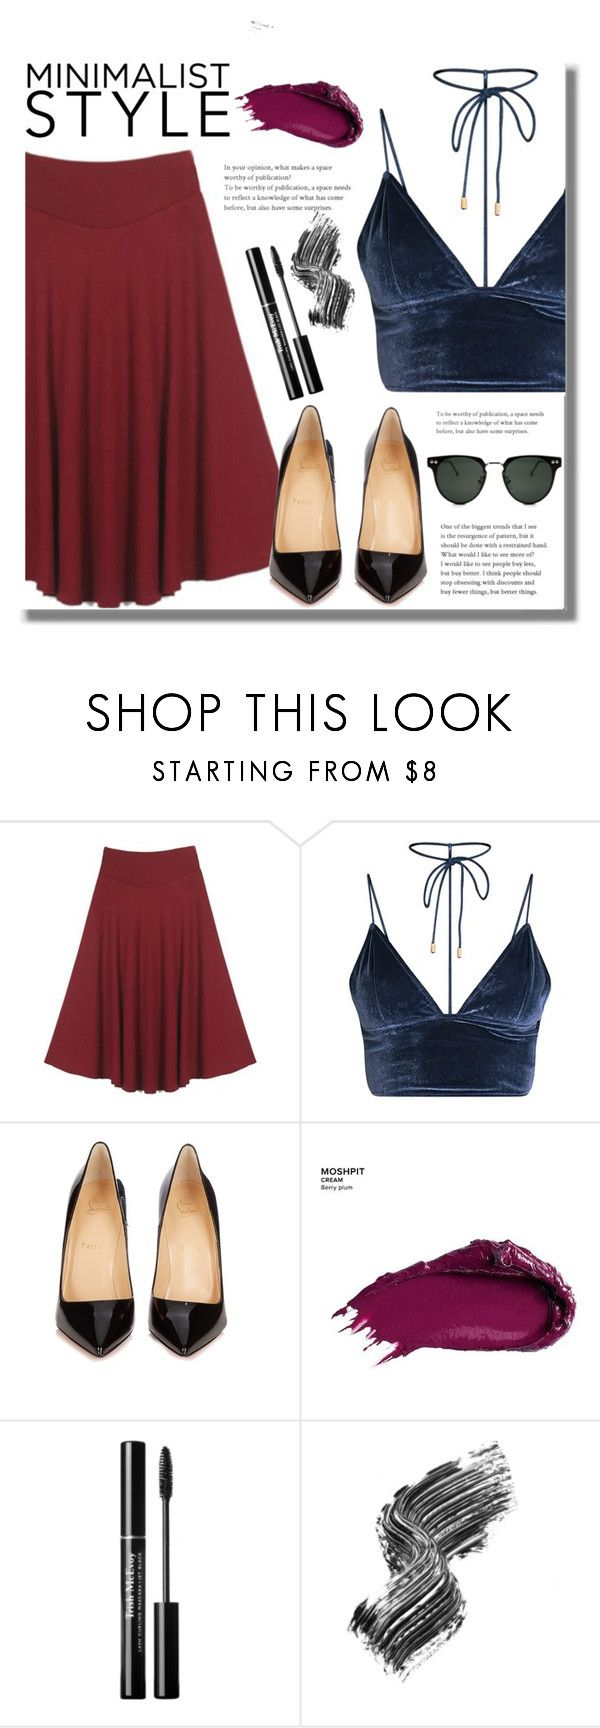 """Minimalist Style"" by edita-n ❤ liked on Polyvore featuring Christian Louboutin, Urban Decay, Illamasqua, Spitfire, Spring, dress and watch"